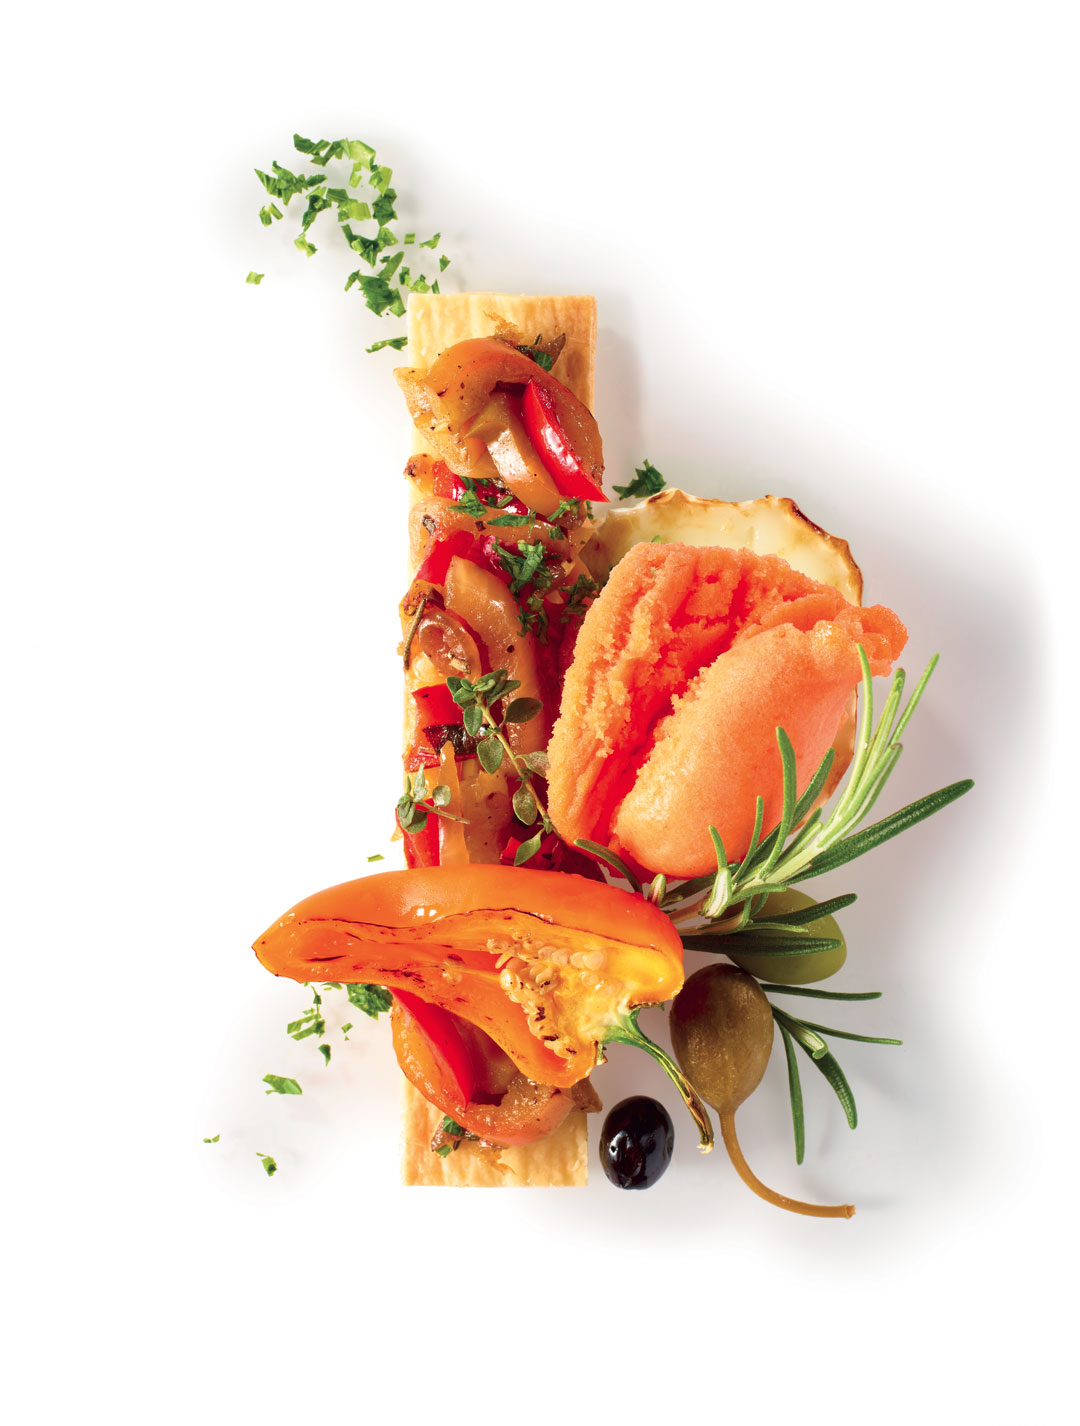 RED PEPPER SORBET, PEPPER PISSALADIÈRE, MELTED GOAT CHEESE, GRILLED PEPPERS, OLIVES, ROSEMARY AND PARSLEY